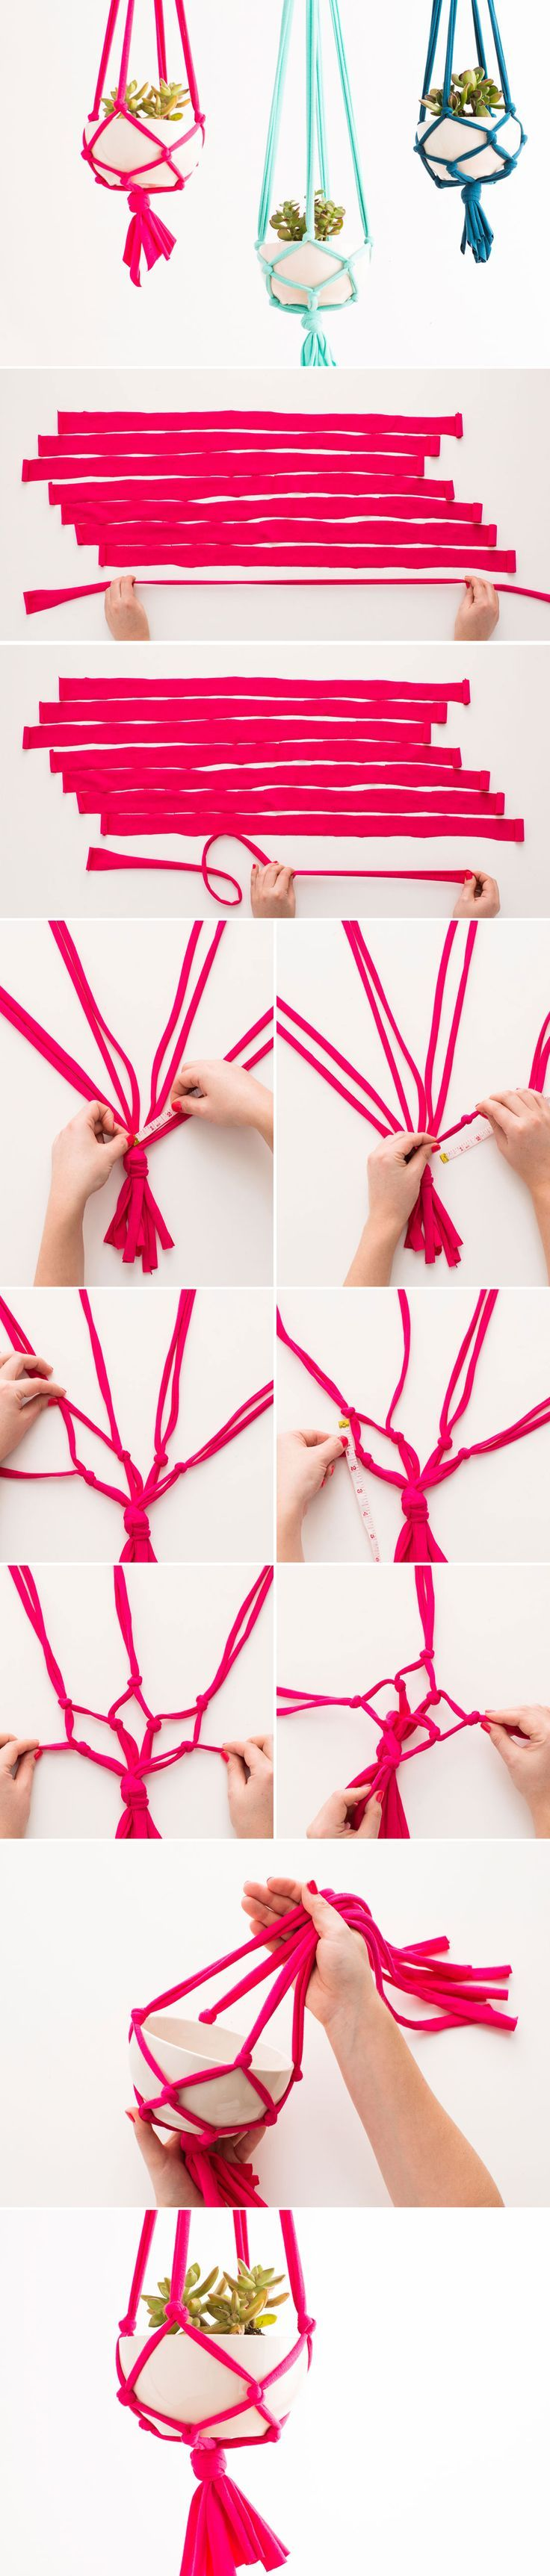 DIY your own macrame hanging vase with this tutorial.